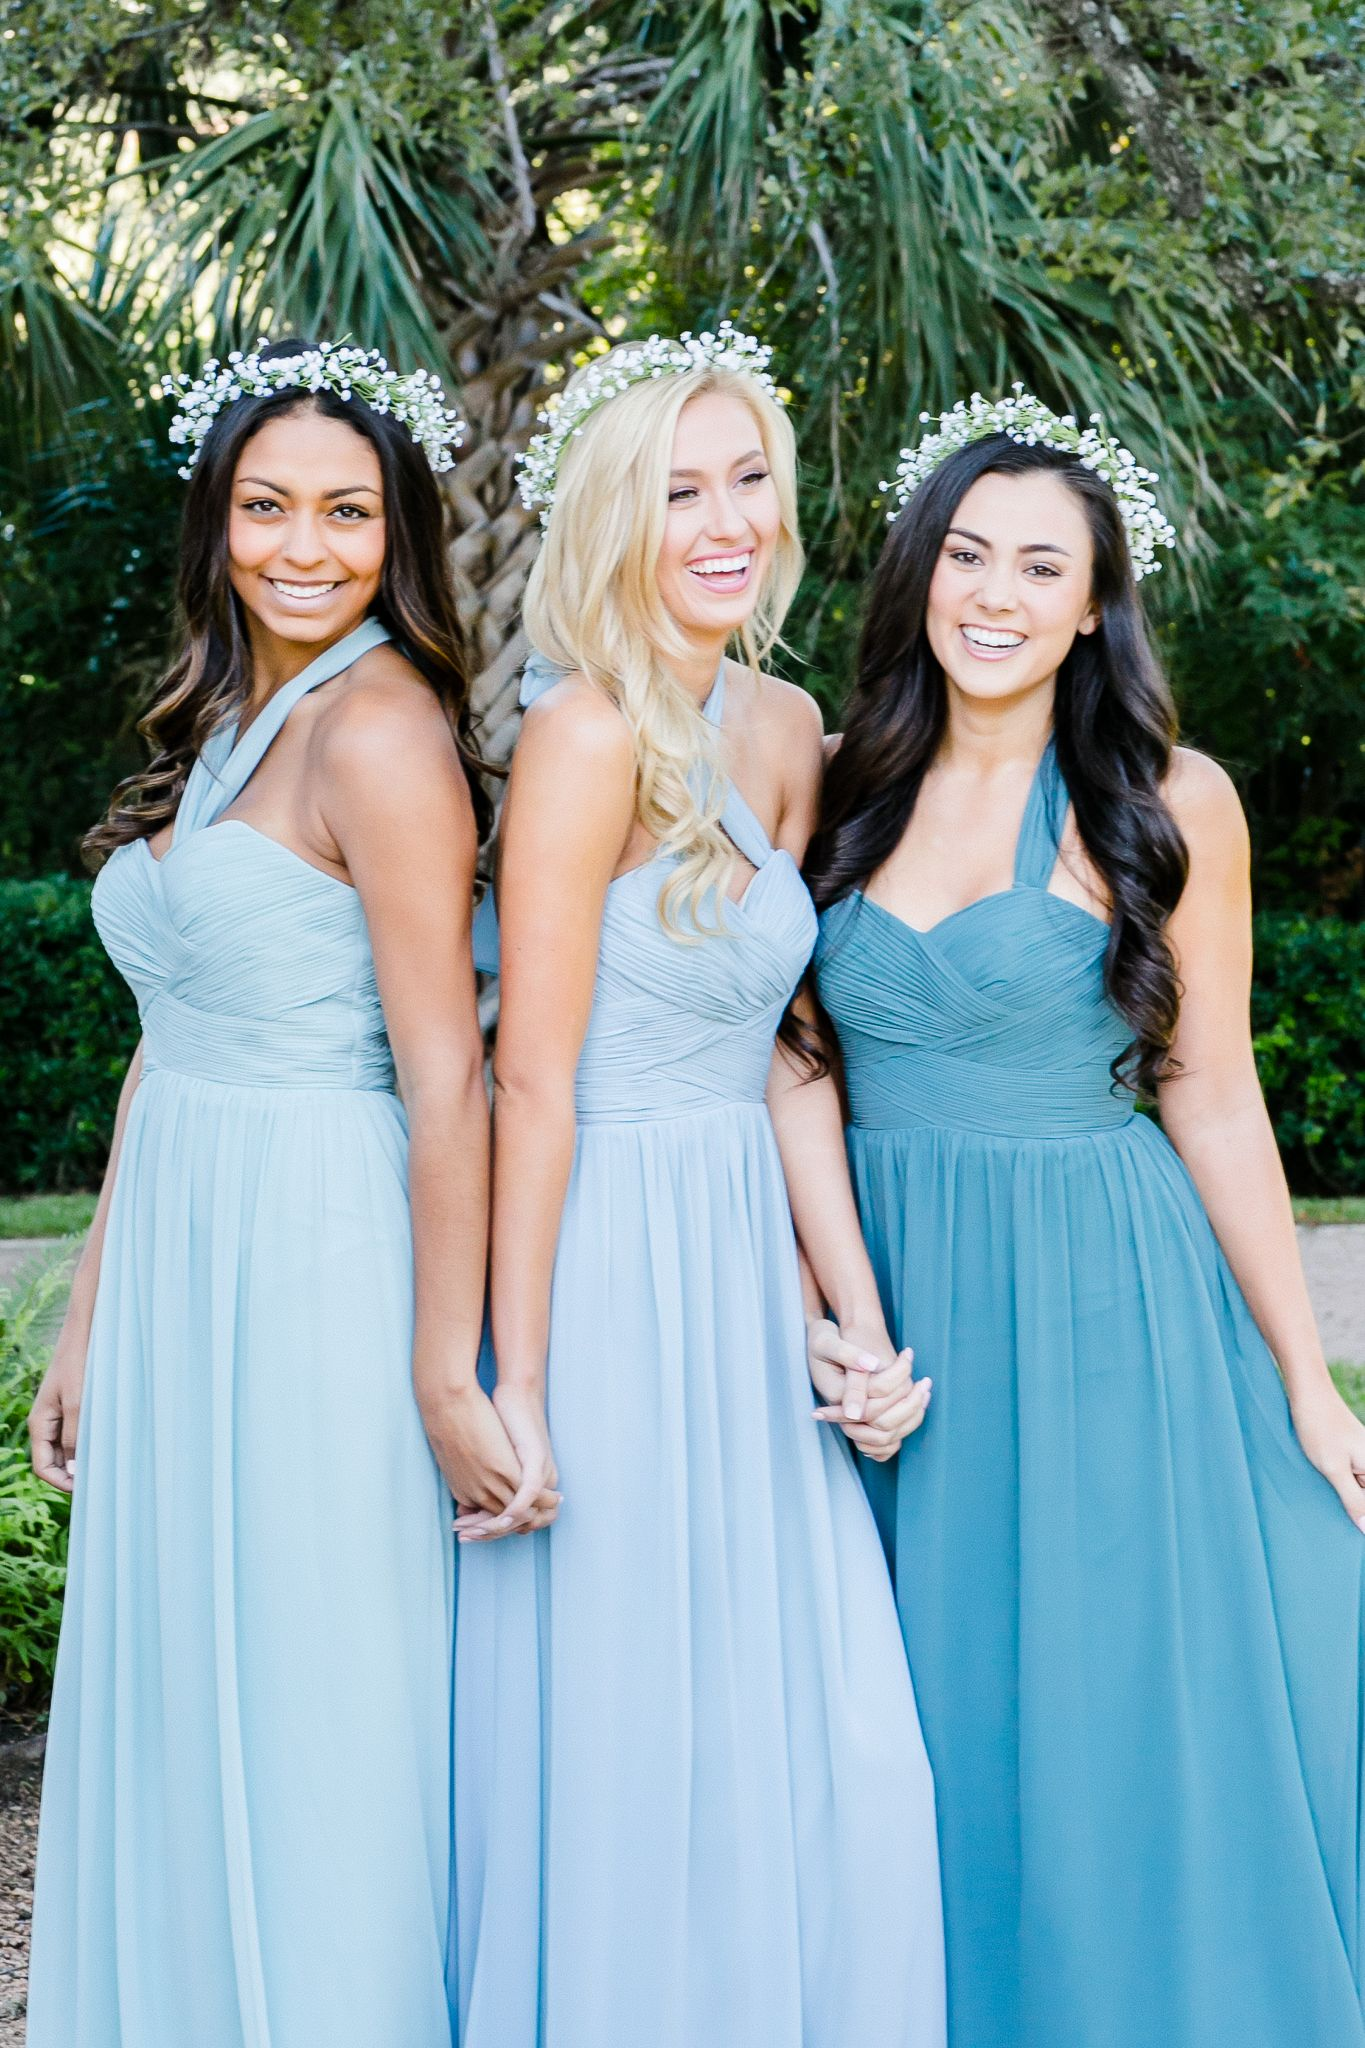 e6ec554a79f10 Mix and Match Revelry Bridesmaid Dresses and Separates. Kennedy Convertible Chiffon  Bridesmaids Gowns pictured in Powder Sky, Love Bird, and Desert Blue ...